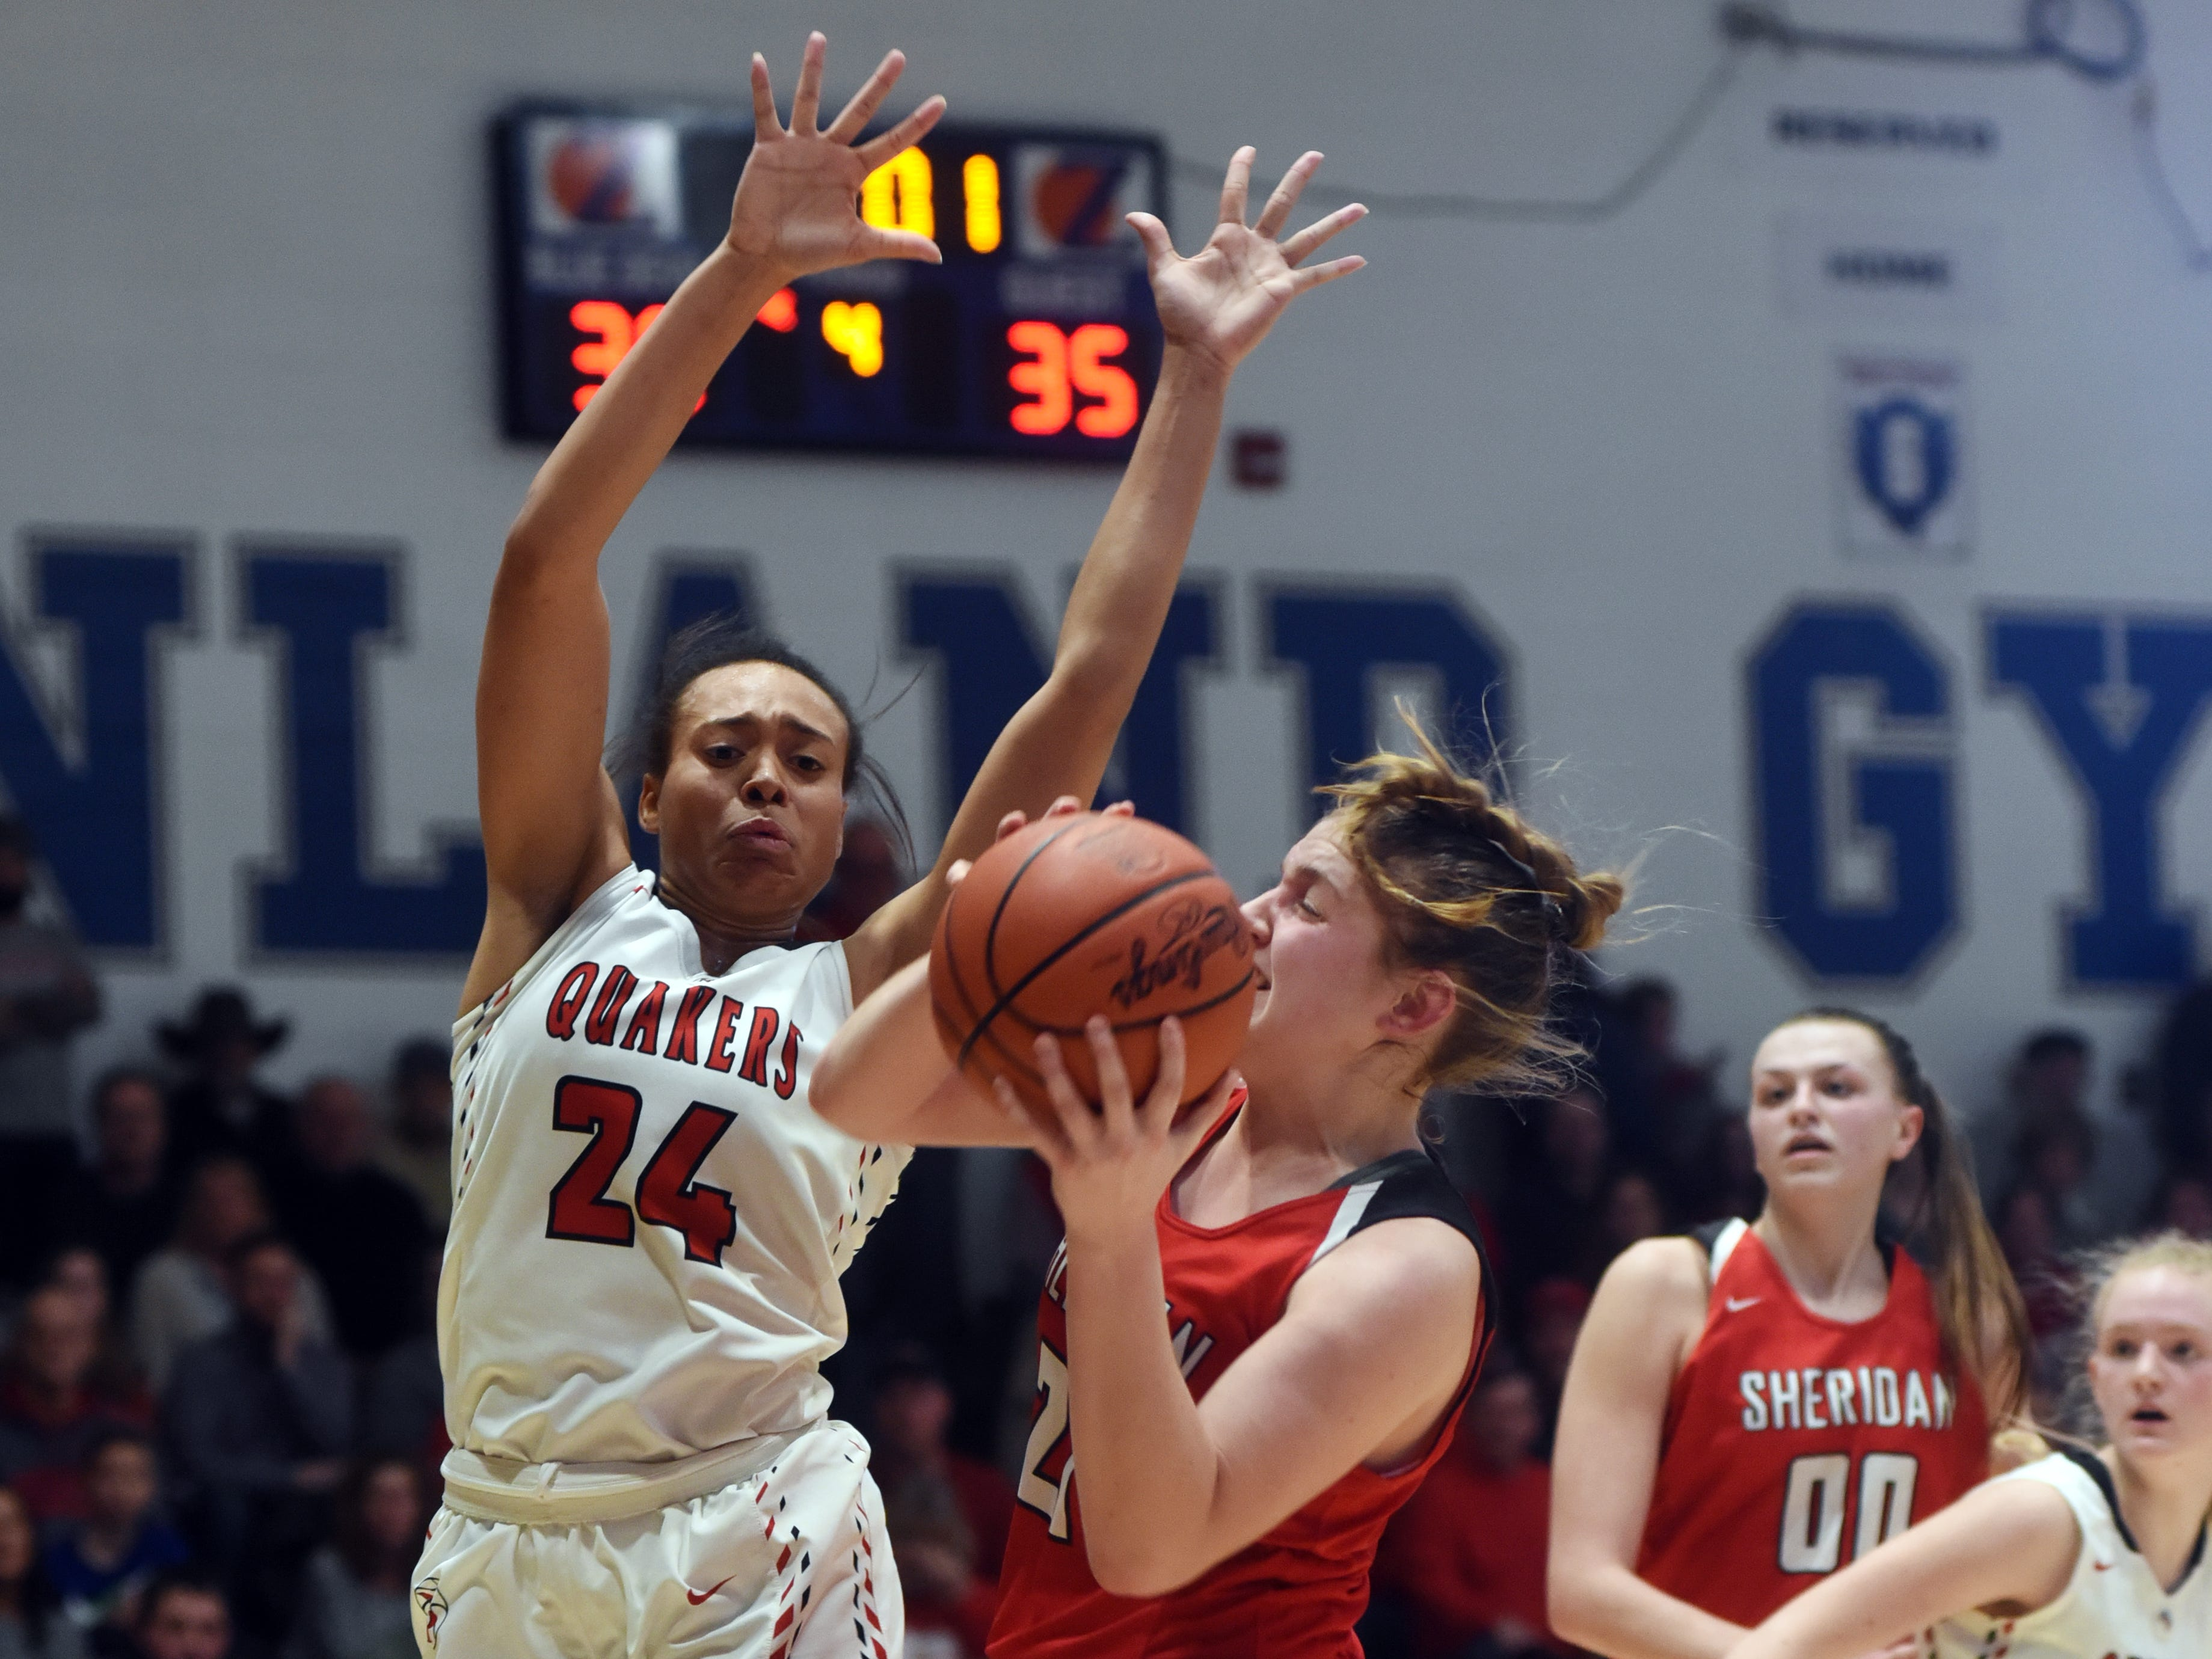 Sheridan's Kendyl Mick is met in the lane by New Philadelphia's Aaliyah Currence during a Division II regional final at Winland Memorial Gymnasium. The Generals reached their first state tournament since 2004 with a 48-46 win.